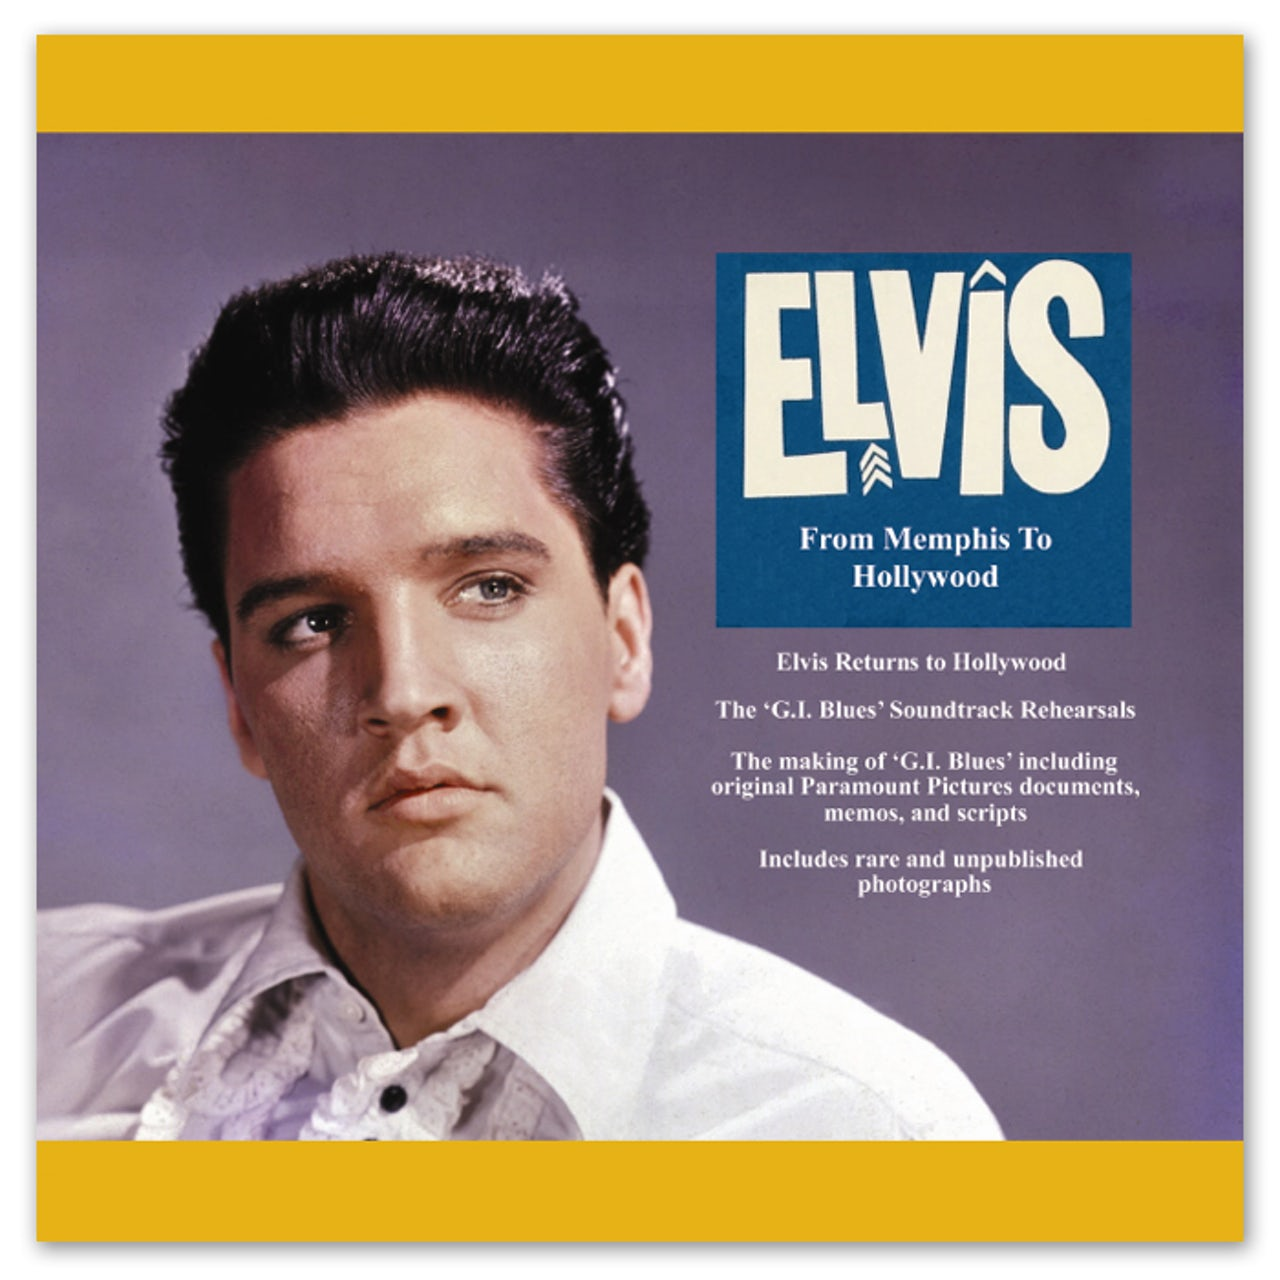 Elvis Presley From Memphis to Hollywood FTD Book and CD